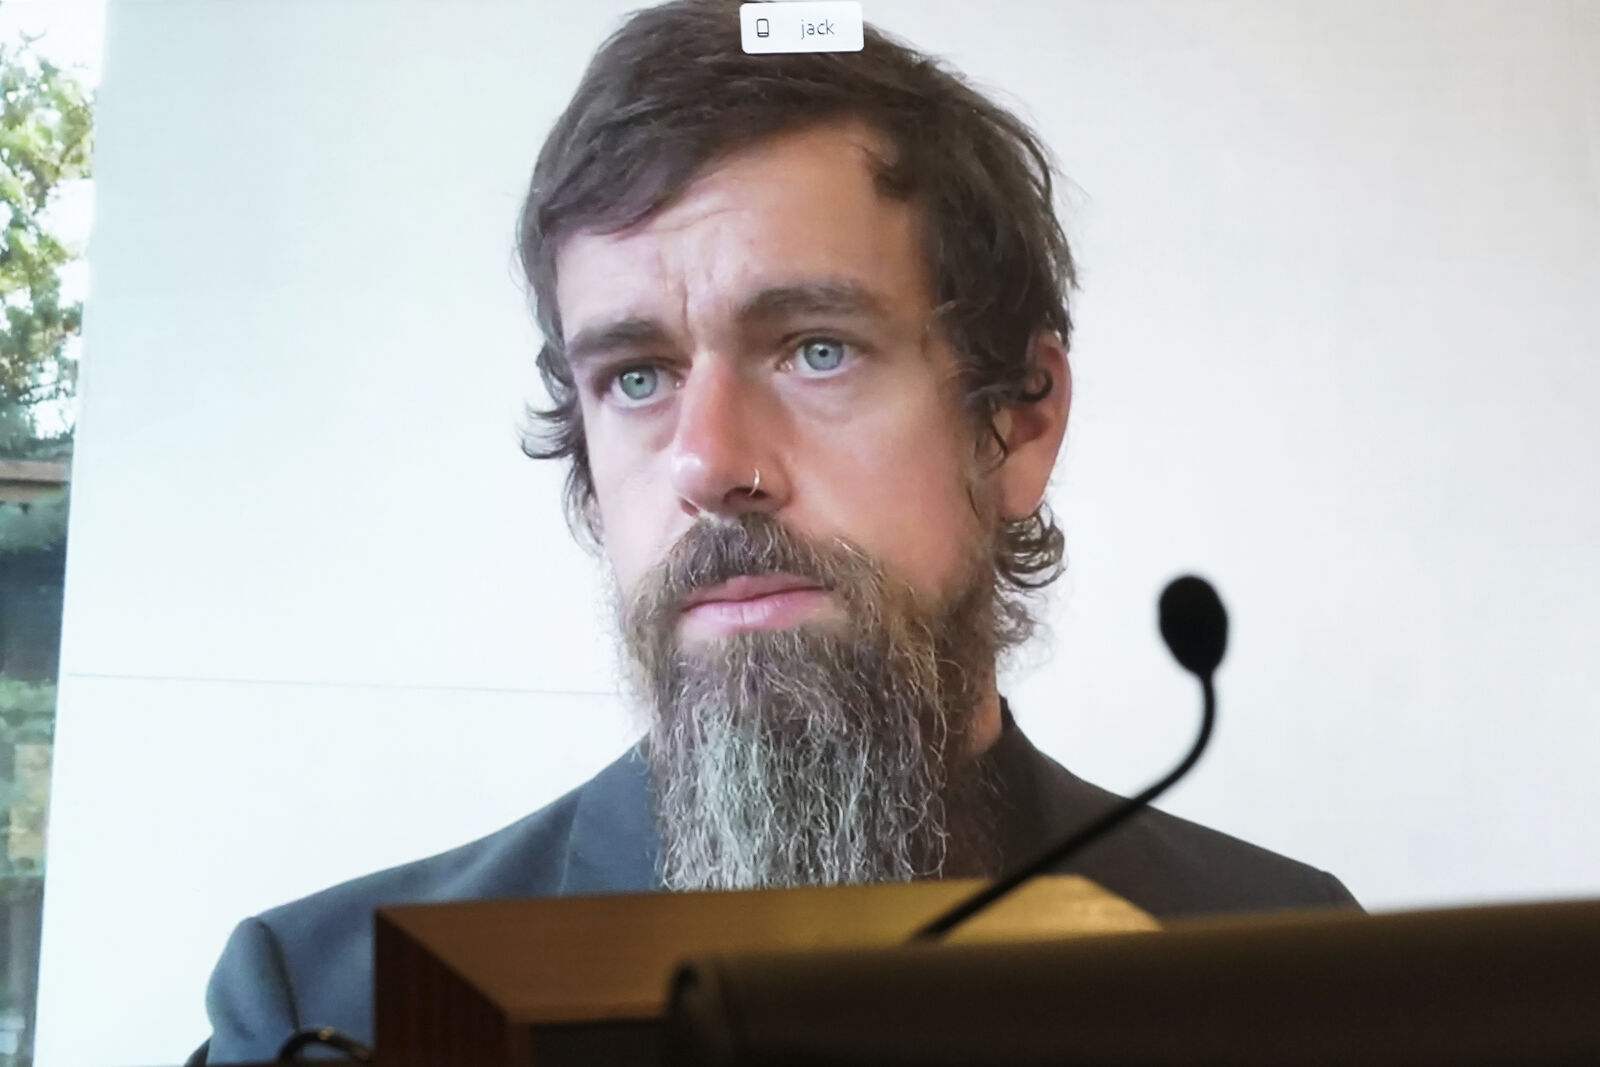 FILE - Twitter CEO Jack Dorsey appears on a screen as he speaks remotely during a hearing before the Senate Commerce Committee on Capitol Hill, Wednesday, Oct. 28, 2020, in Washington. (Greg Nash/Pool via AP)